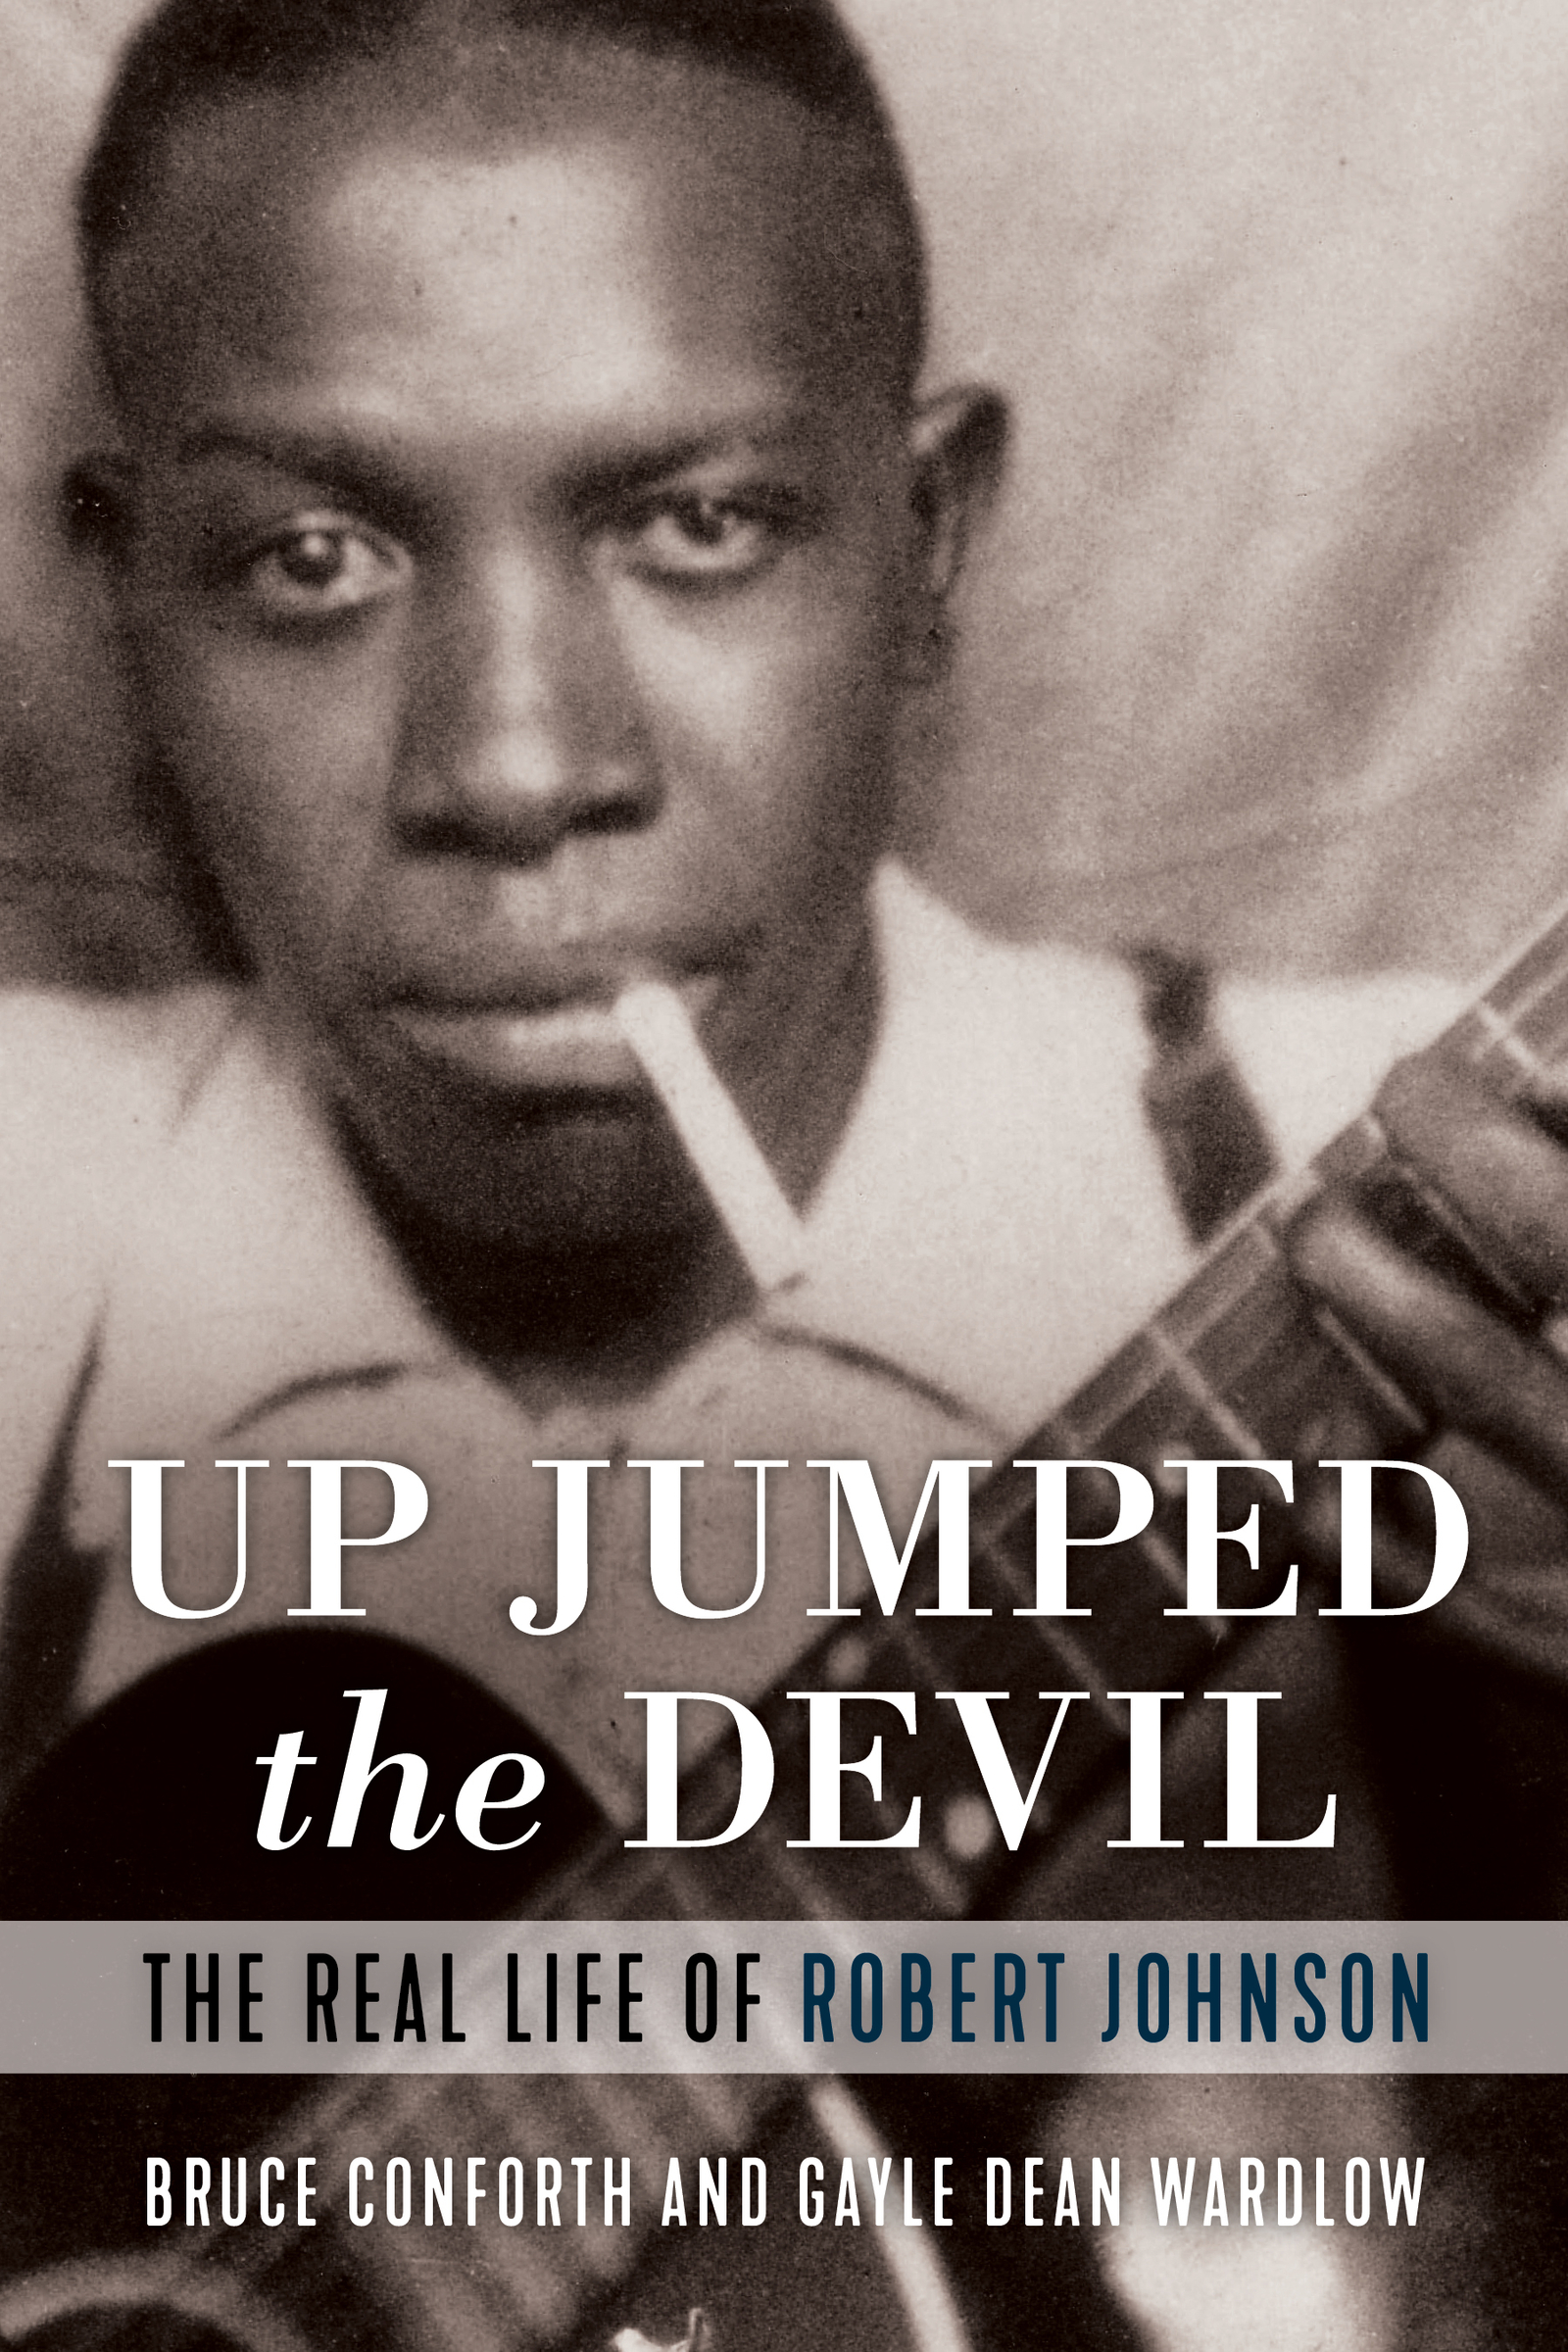 Up Jumped the Devil [electronic resource] : The Real Life of Robert Johnson